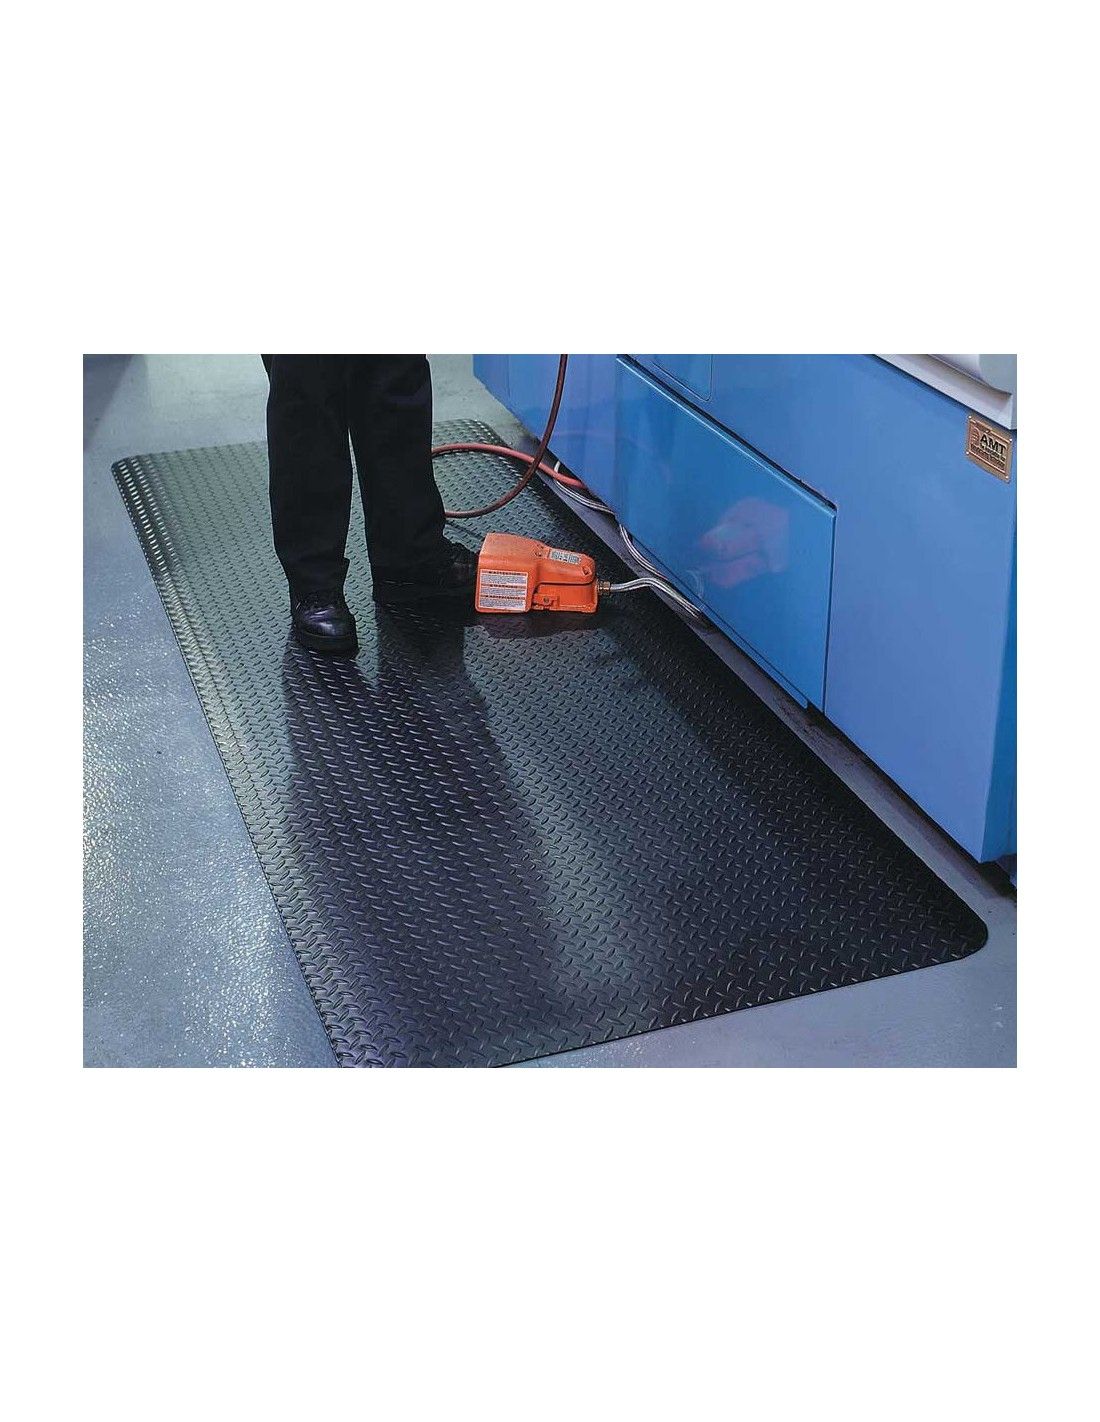 Zed Chex Anti Fatigue Matting Anti Fatigue Checker Plate